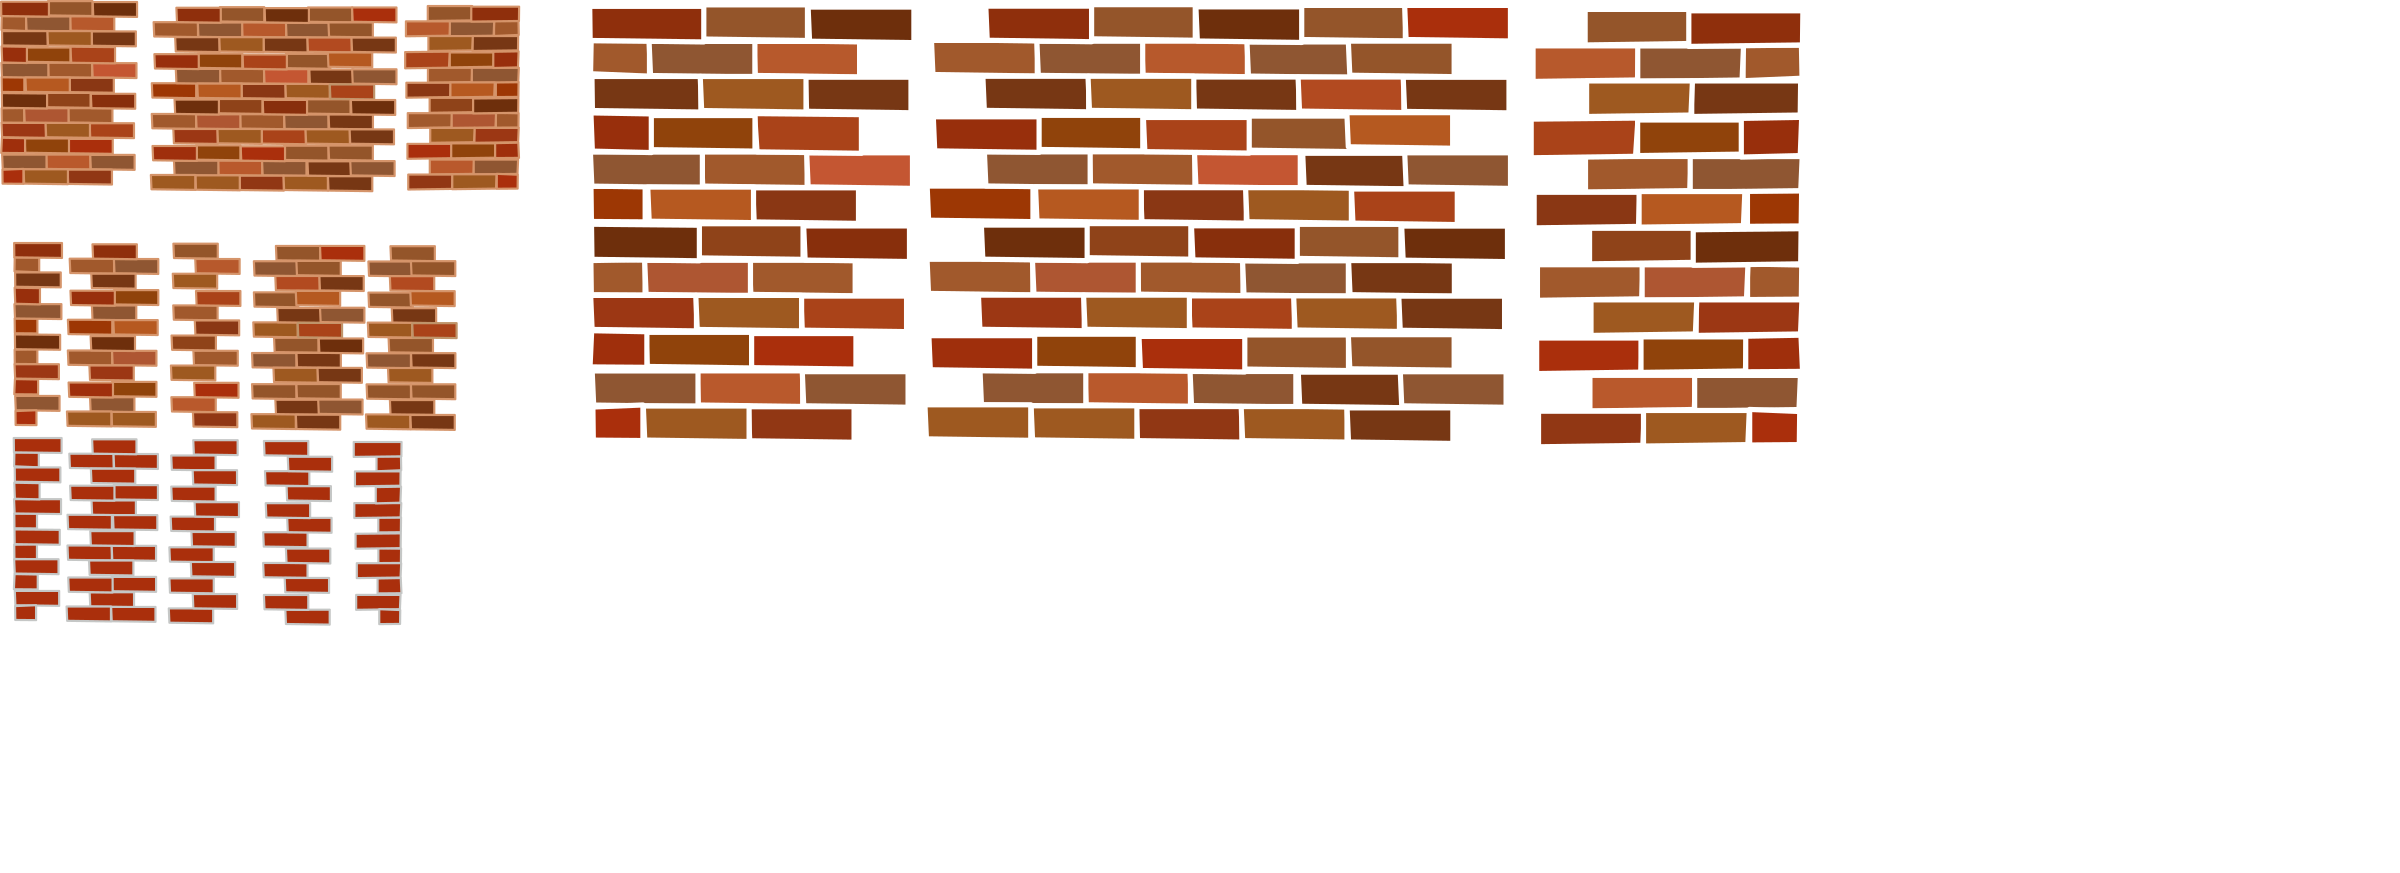 Brick wall png. Walls icons free and